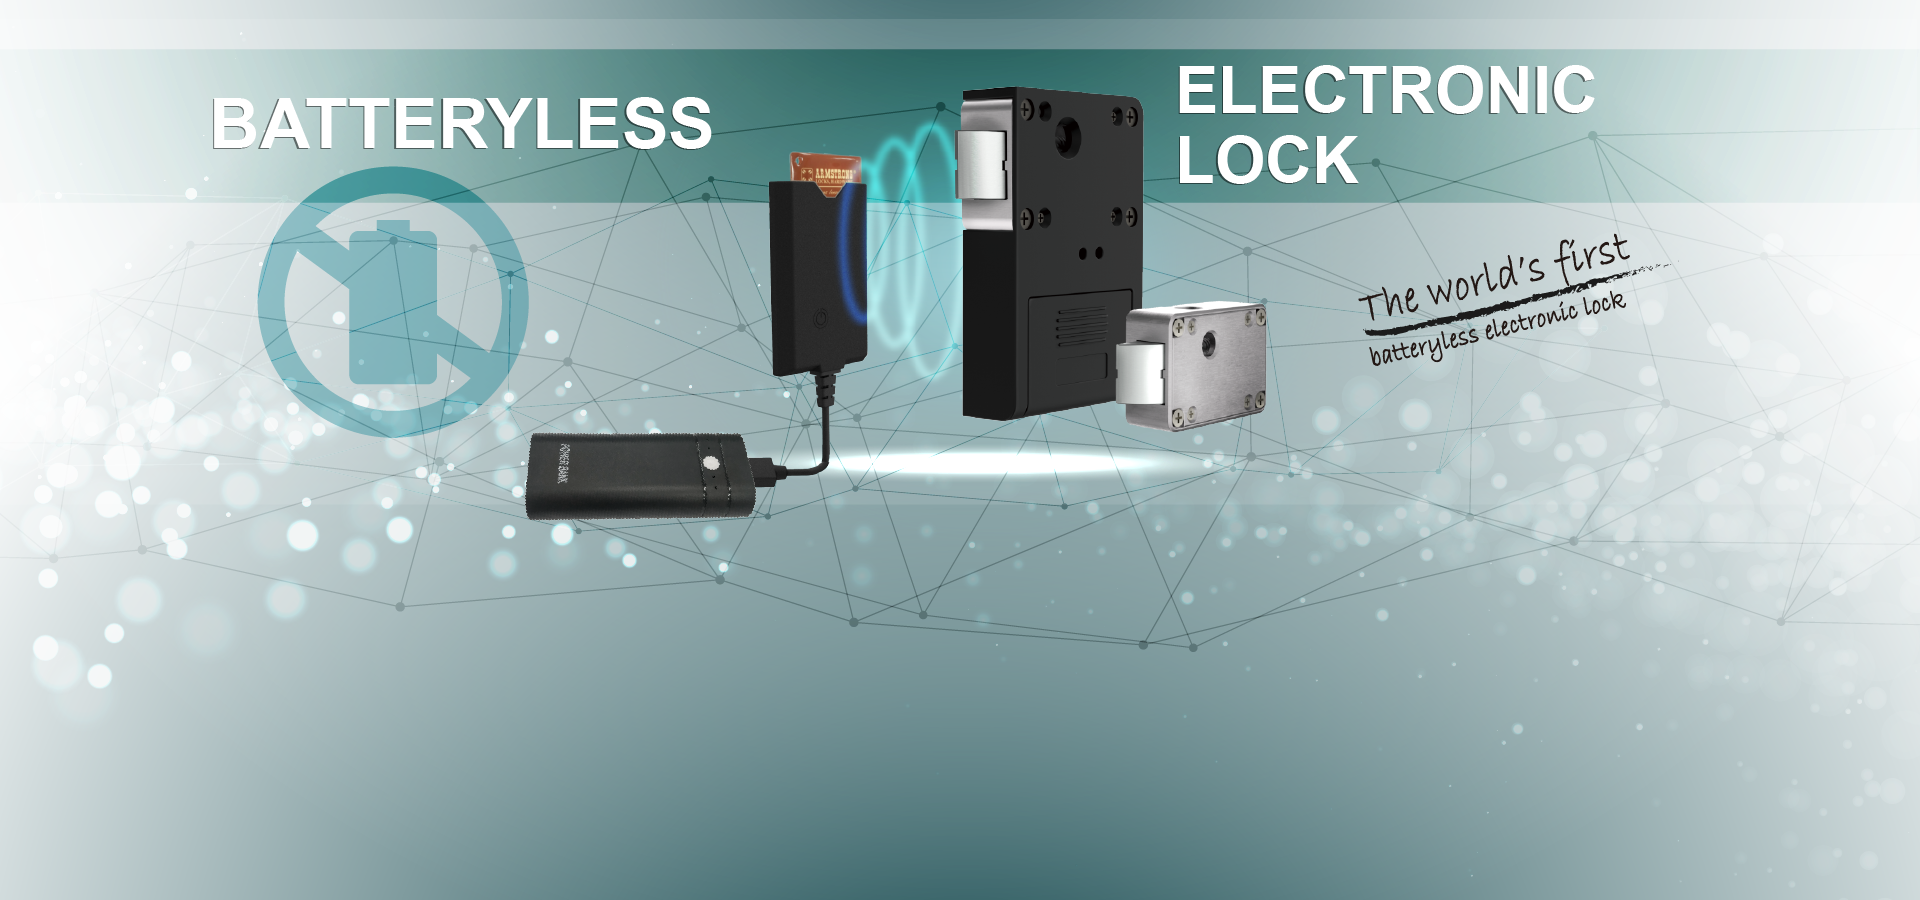 BAI FU is Taiwan Professional Lock Manufacturer